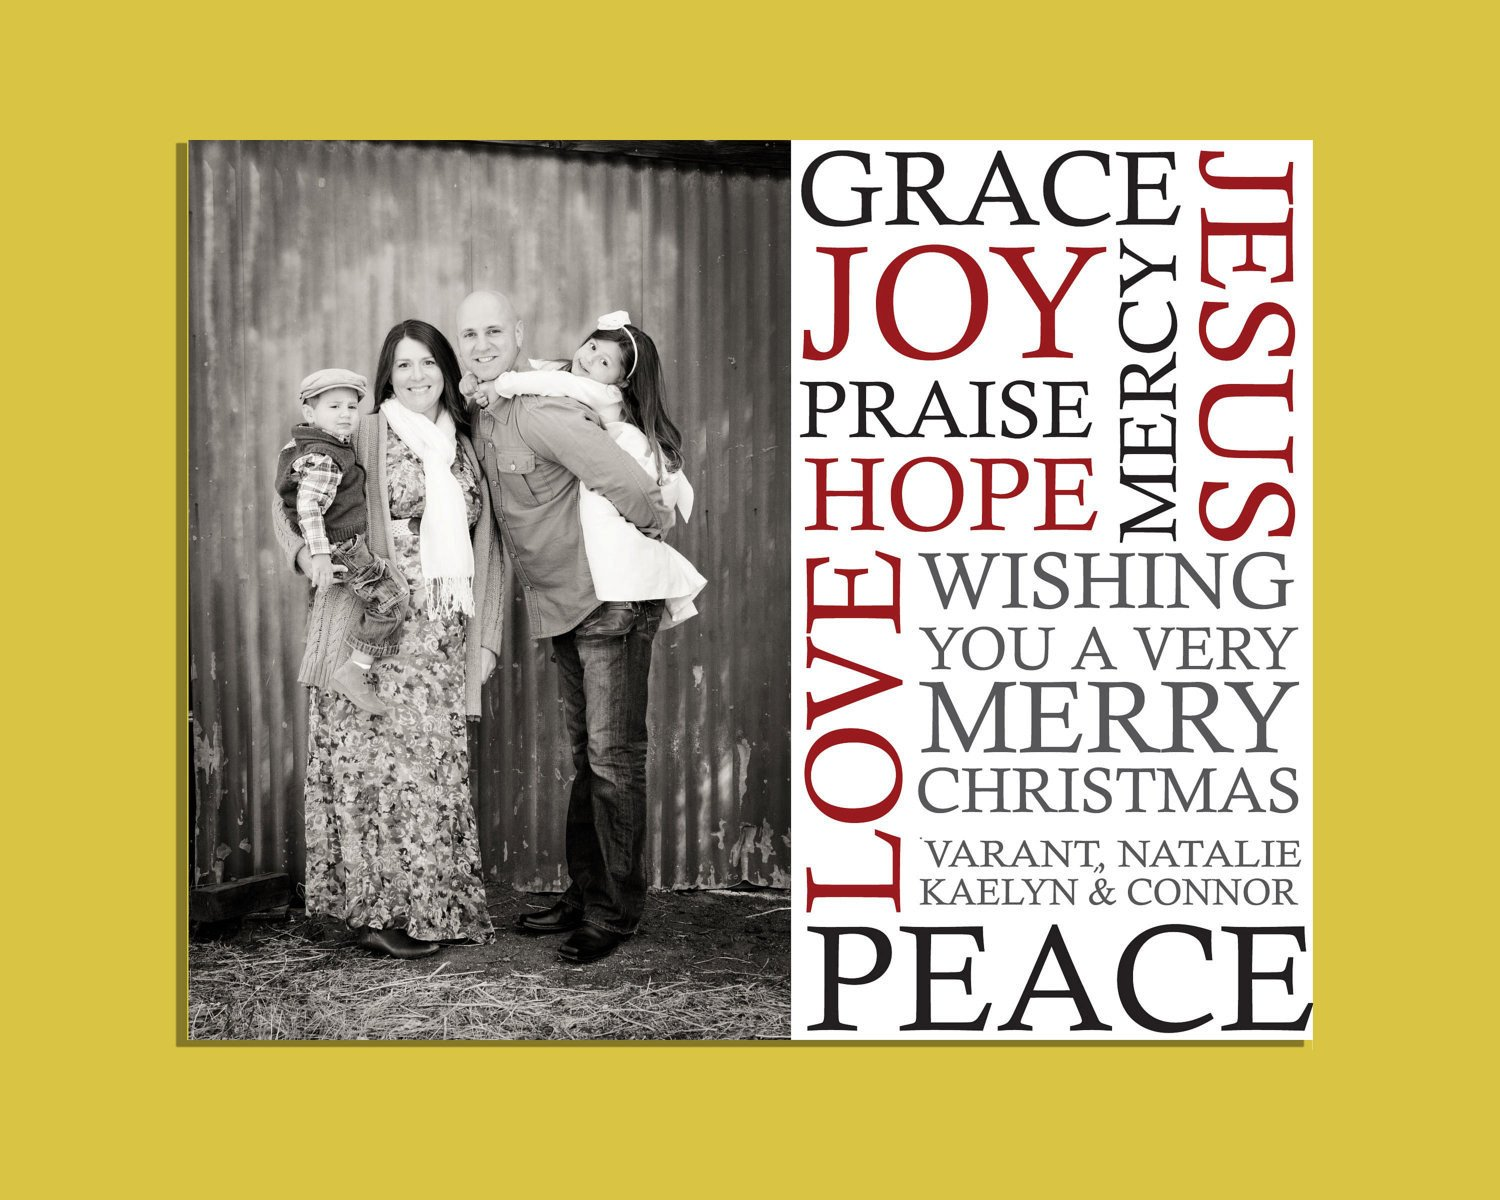 Christmas Card Template Photoshop 6x7 5 Subway Christmas Card Template Shop Sized for